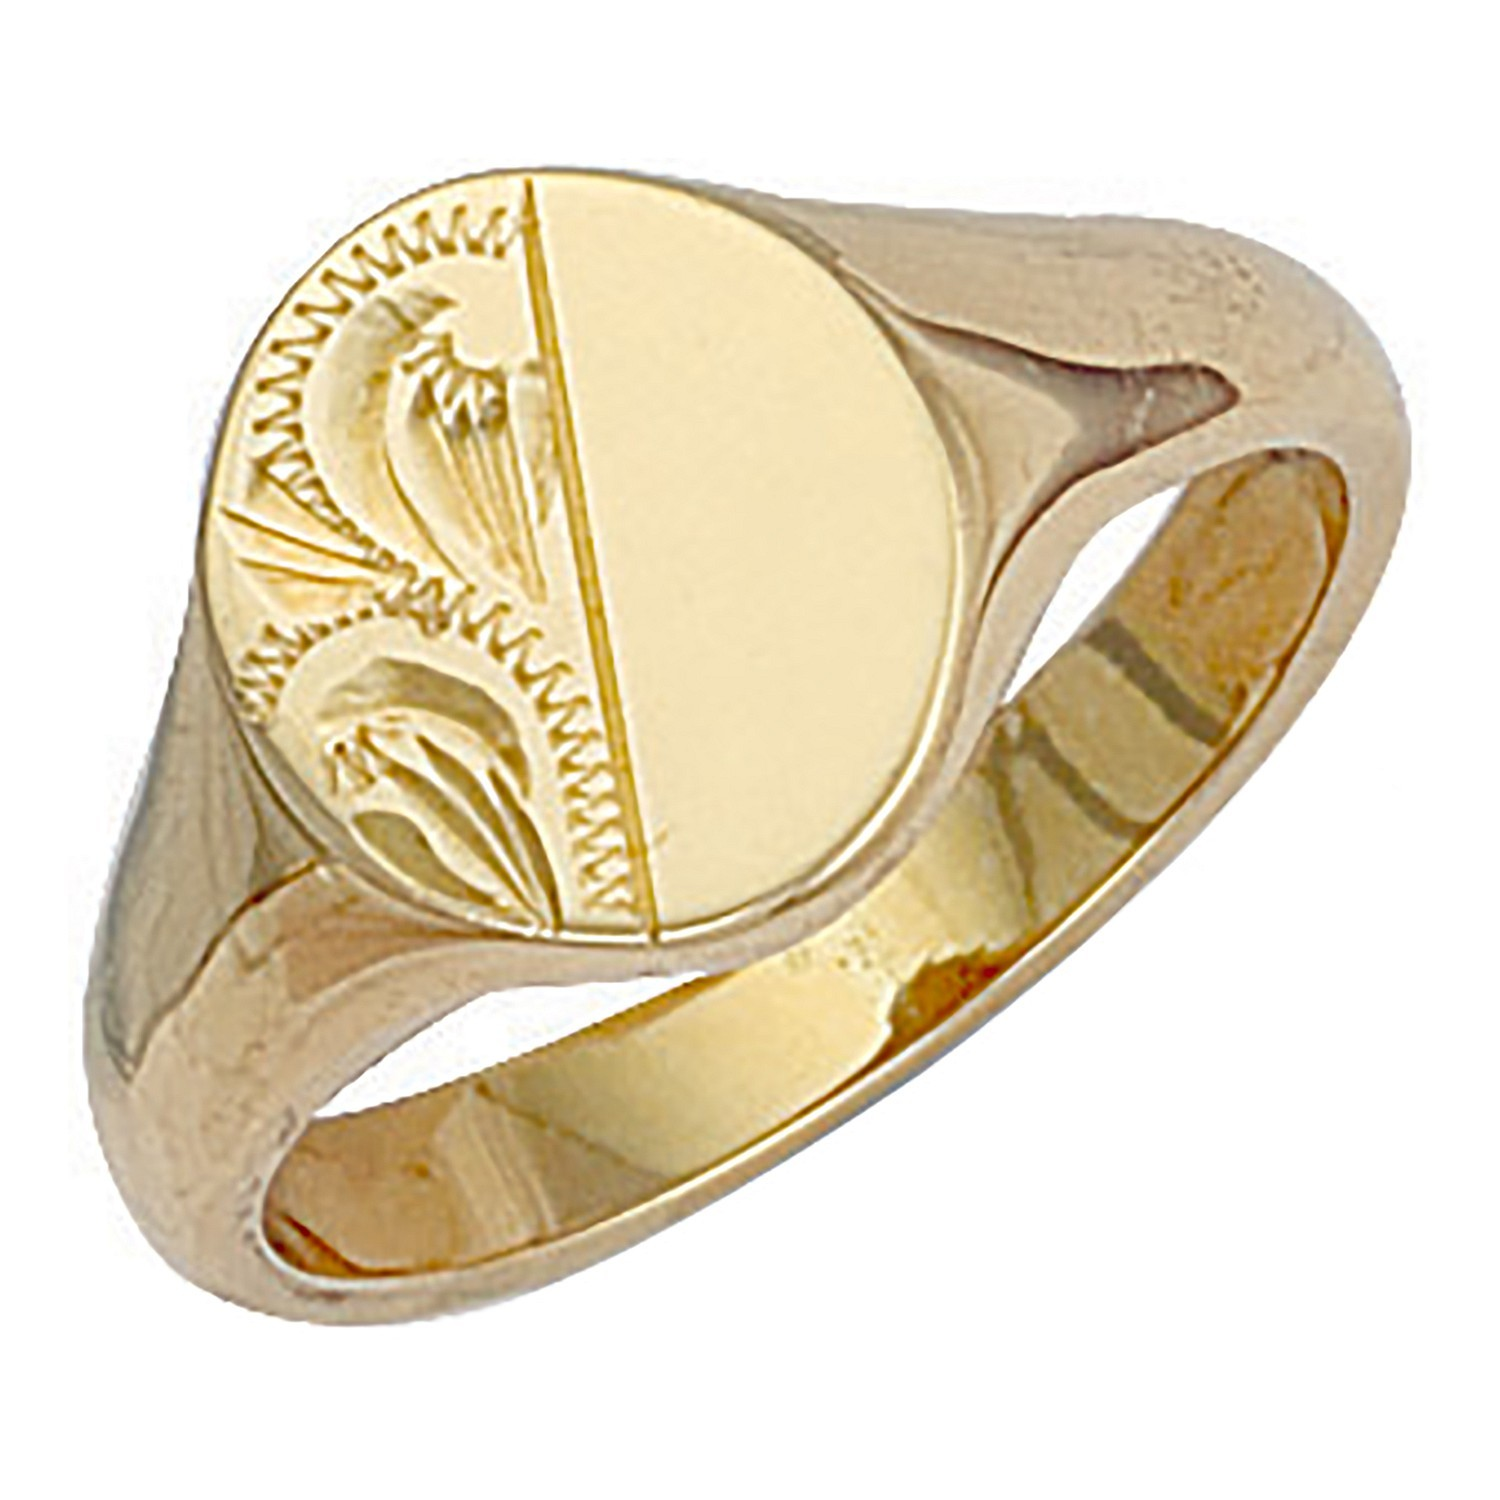 Y/G Oval Engraved Signet Ring